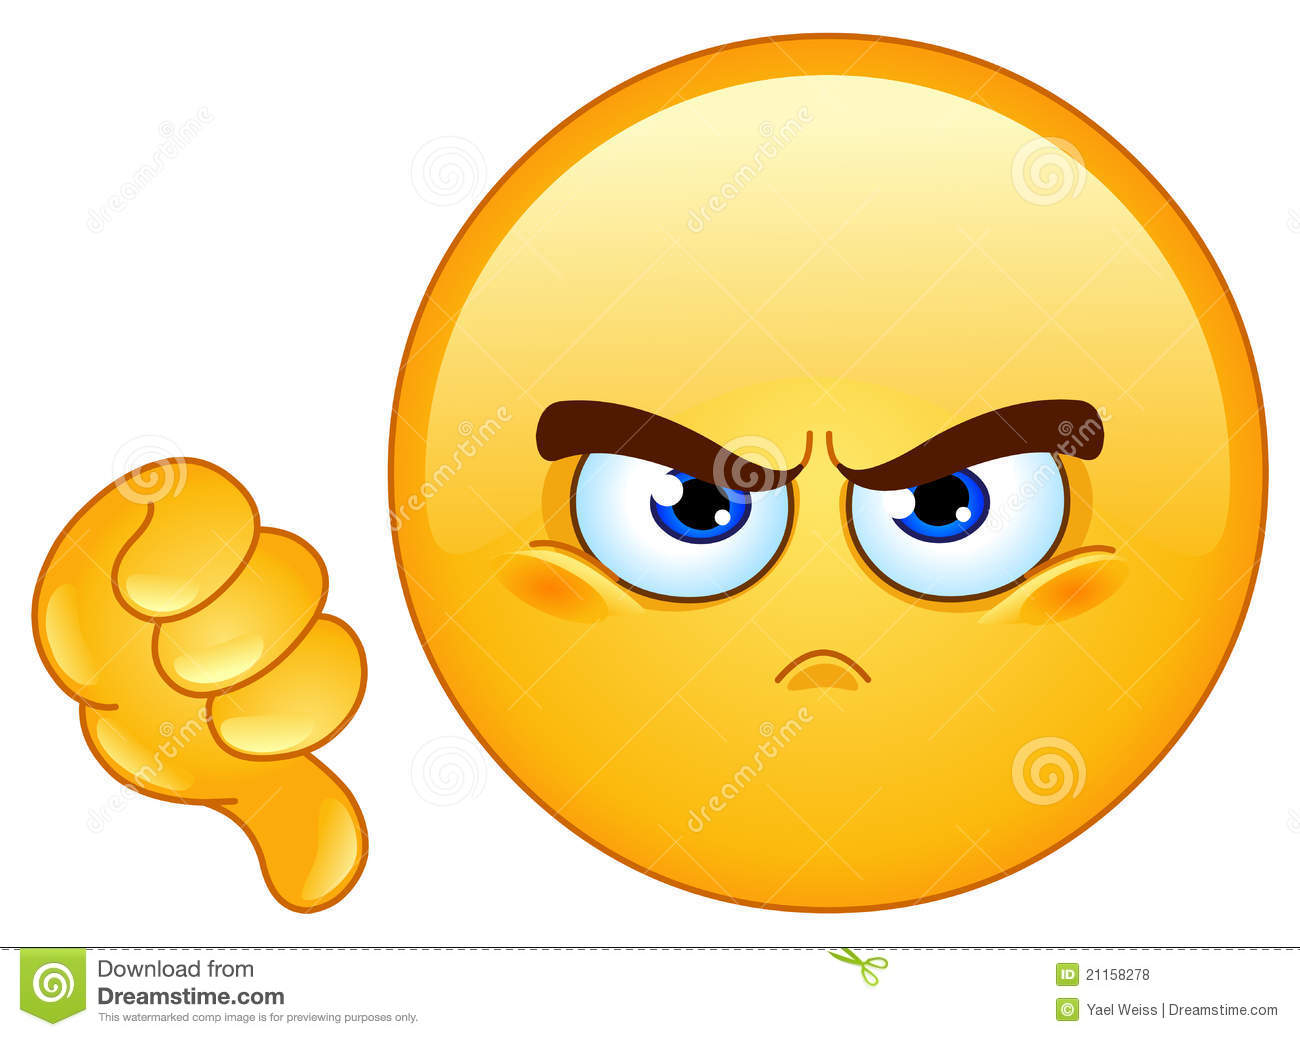 Dislike emoticon stock illustrations 135 dislike emoticon stock illustrations vectors clipart dreamstime